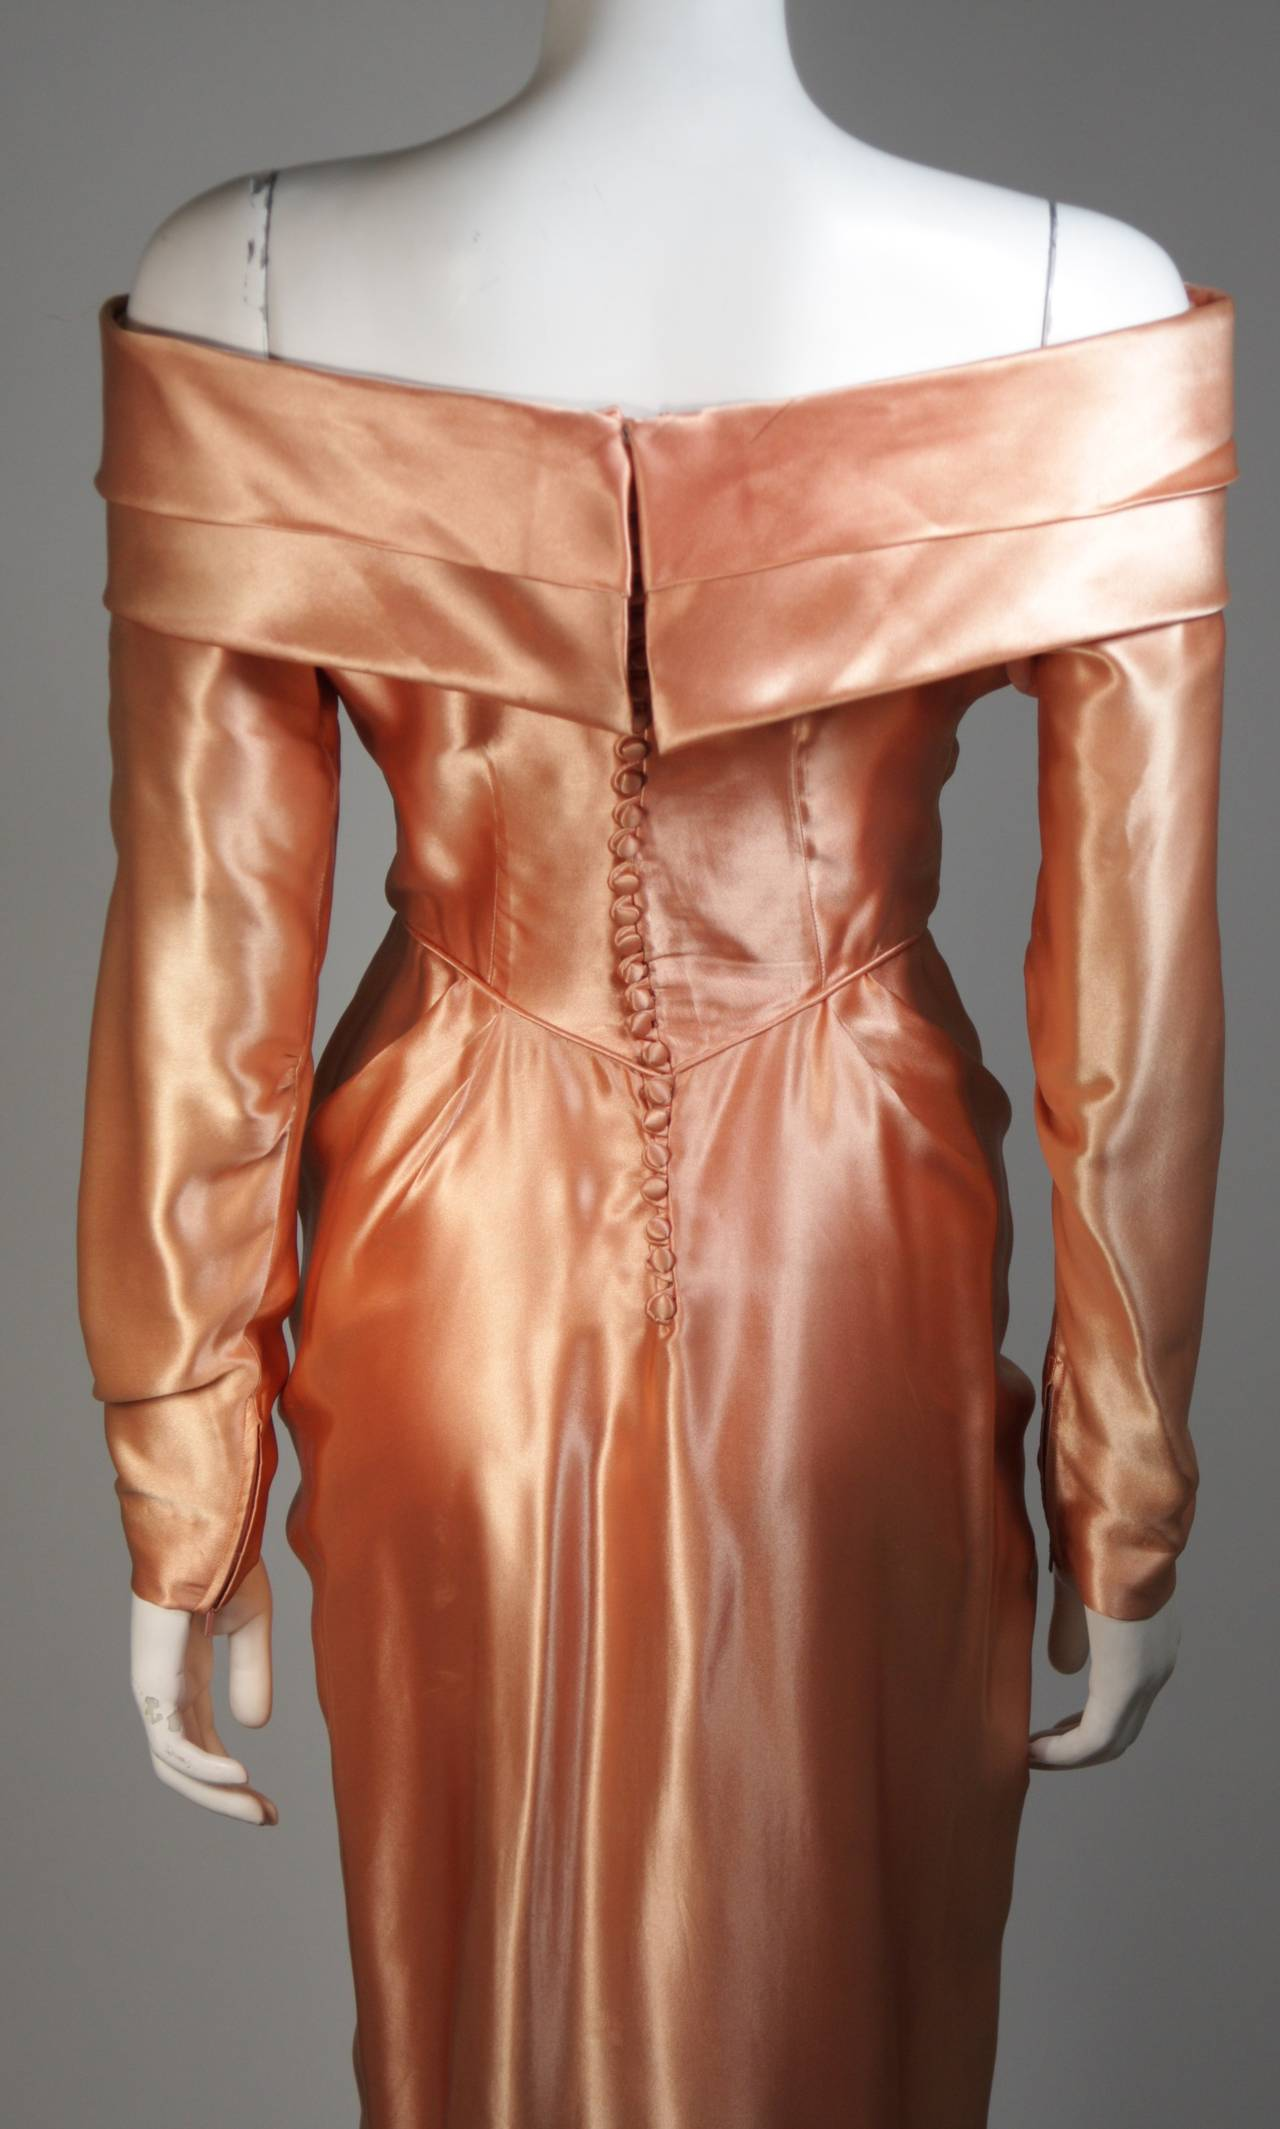 Ceil Chapman Draped Silk Gown in a Peach Champagne Hue Size 4-6 For Sale 4